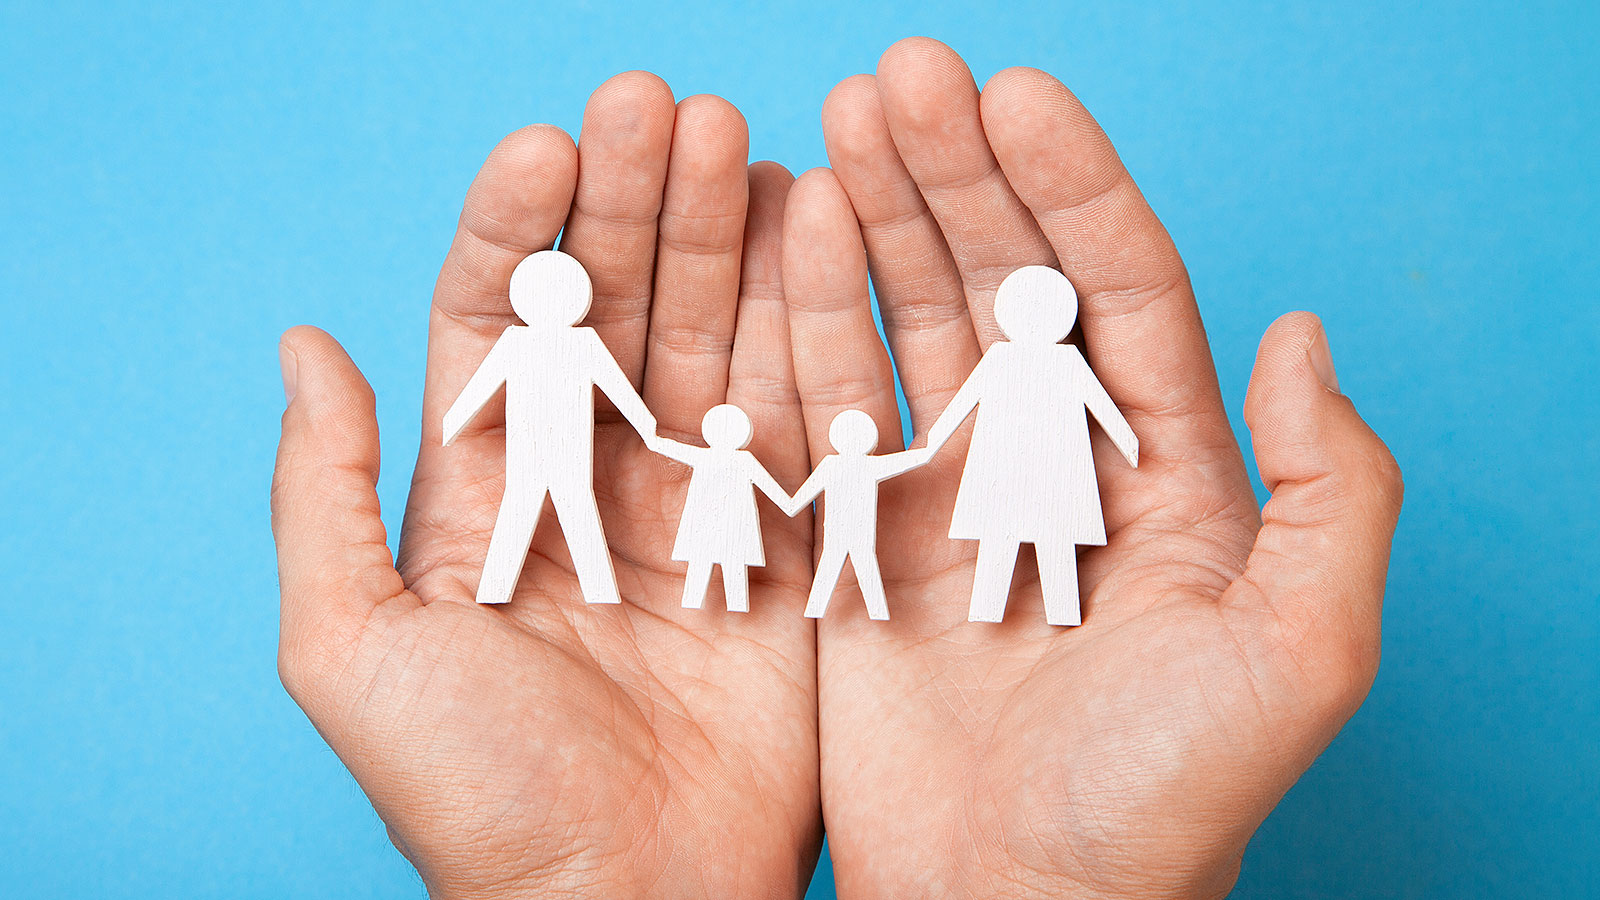 Are you a stay at home parent? You should know this about life insurance